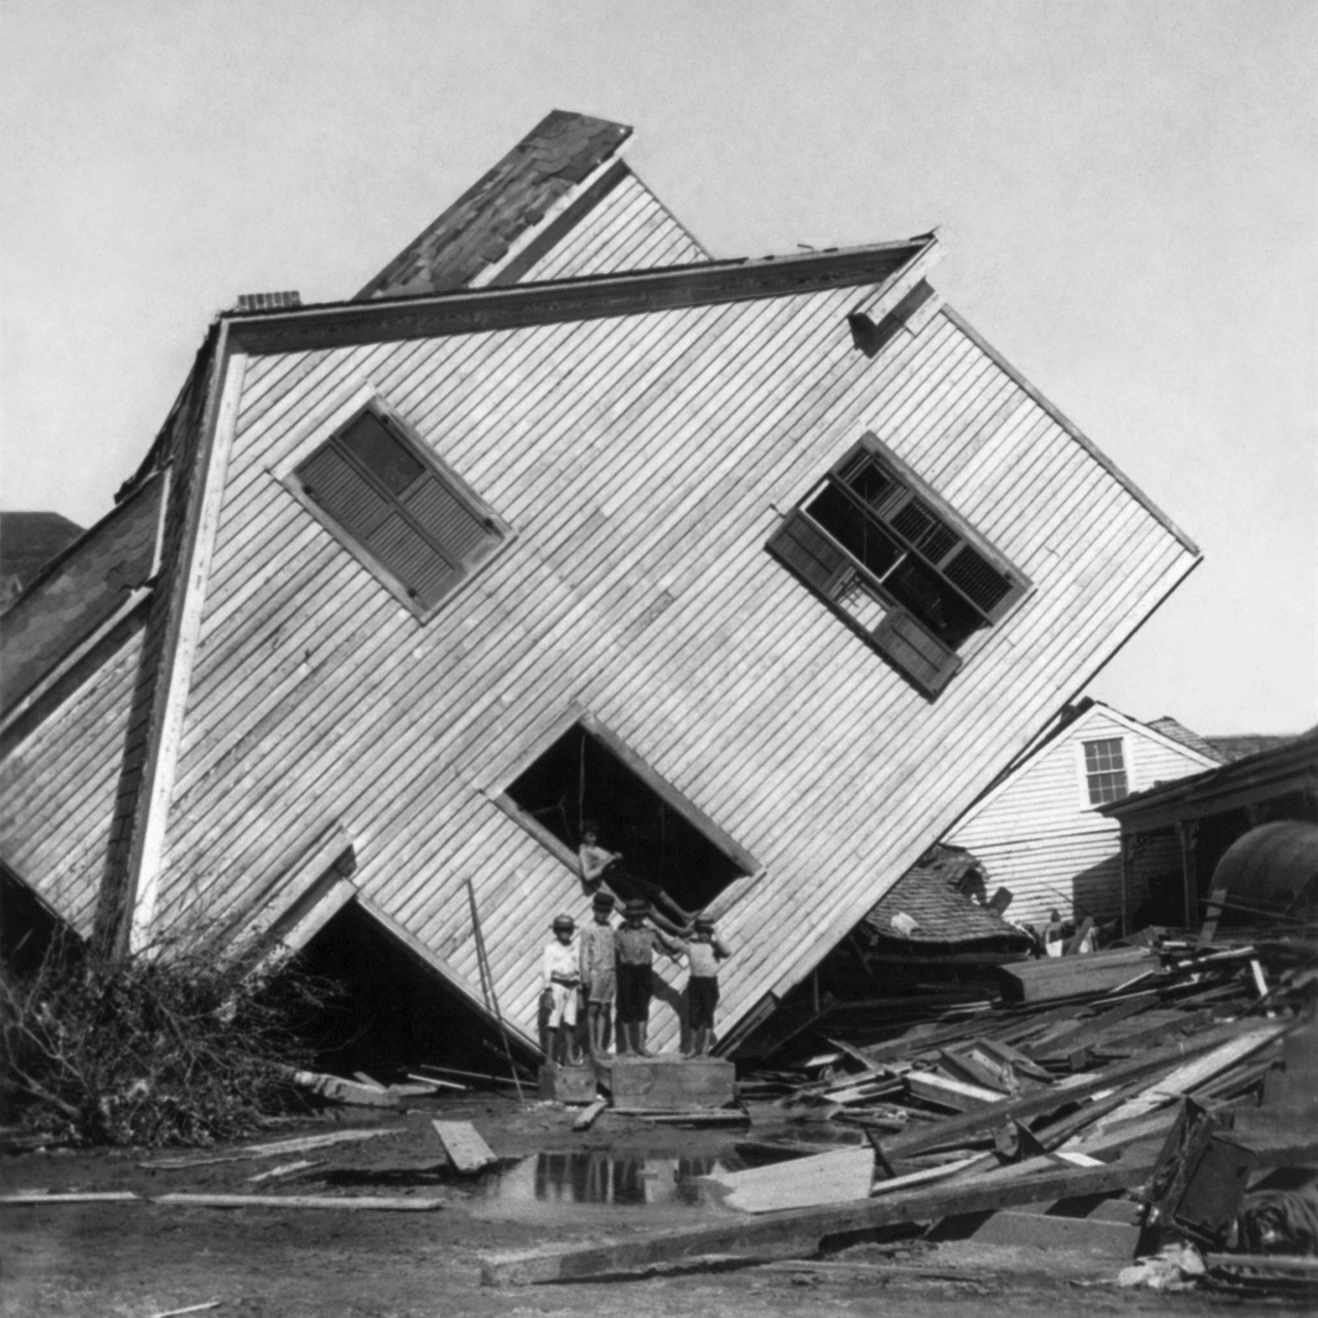 A house tipped on its side, with several boys standing in front, after the Great Galveston Storm in Texas.